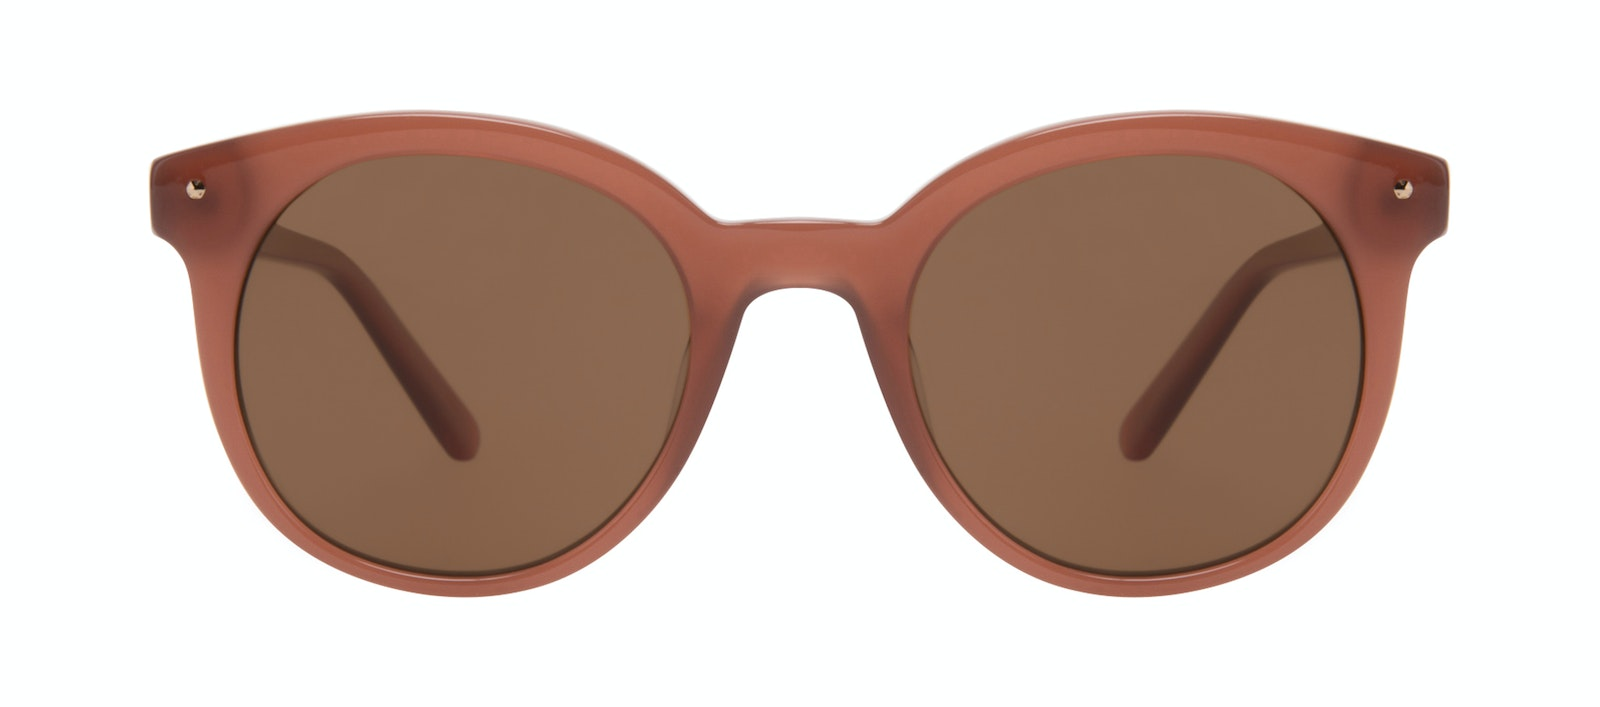 Affordable Fashion Glasses Round Sunglasses Women Hip Toffee Front